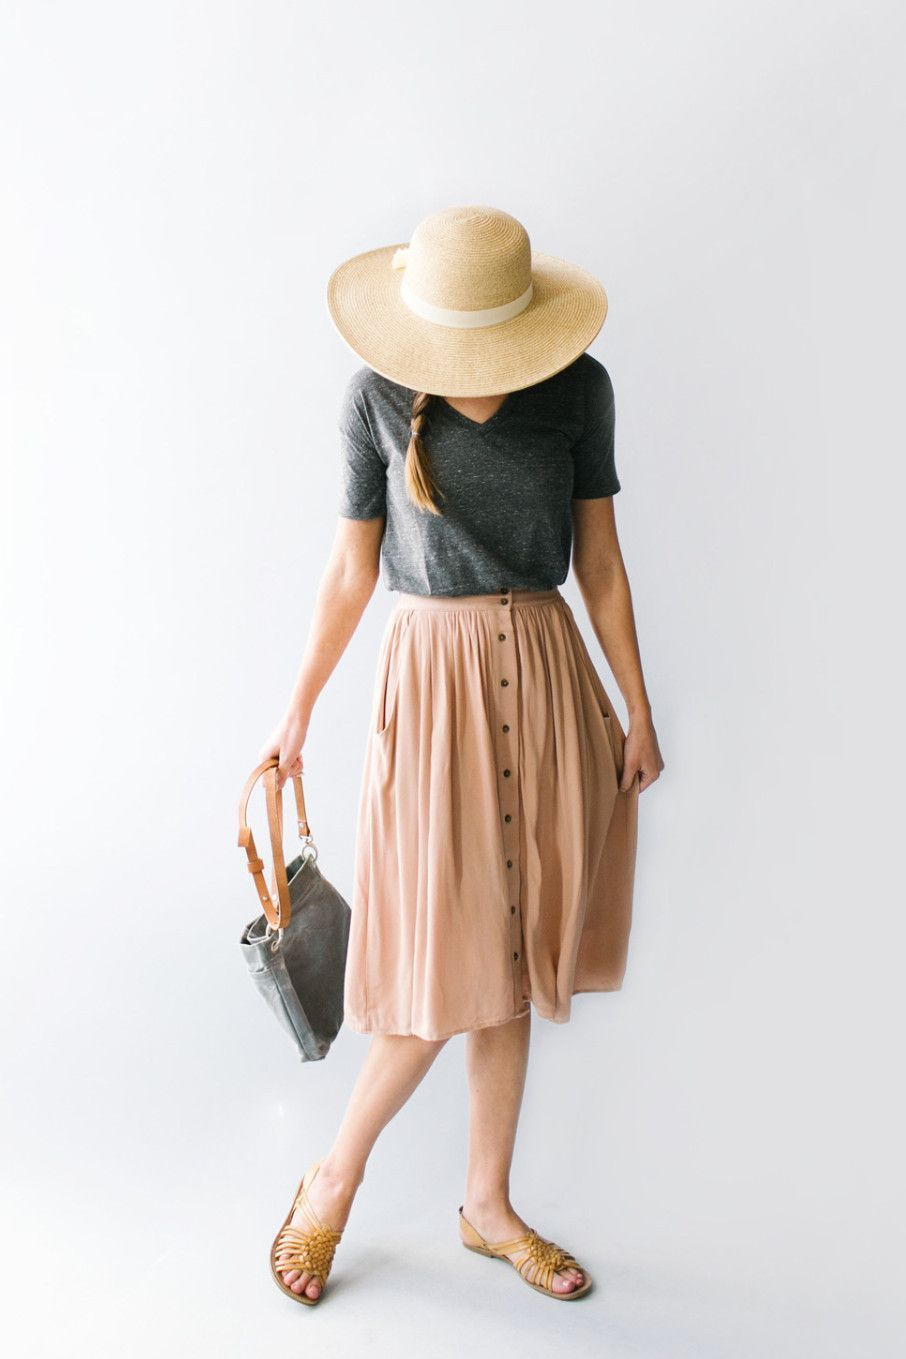 'Skye' Skirt - The Main Street Exchange